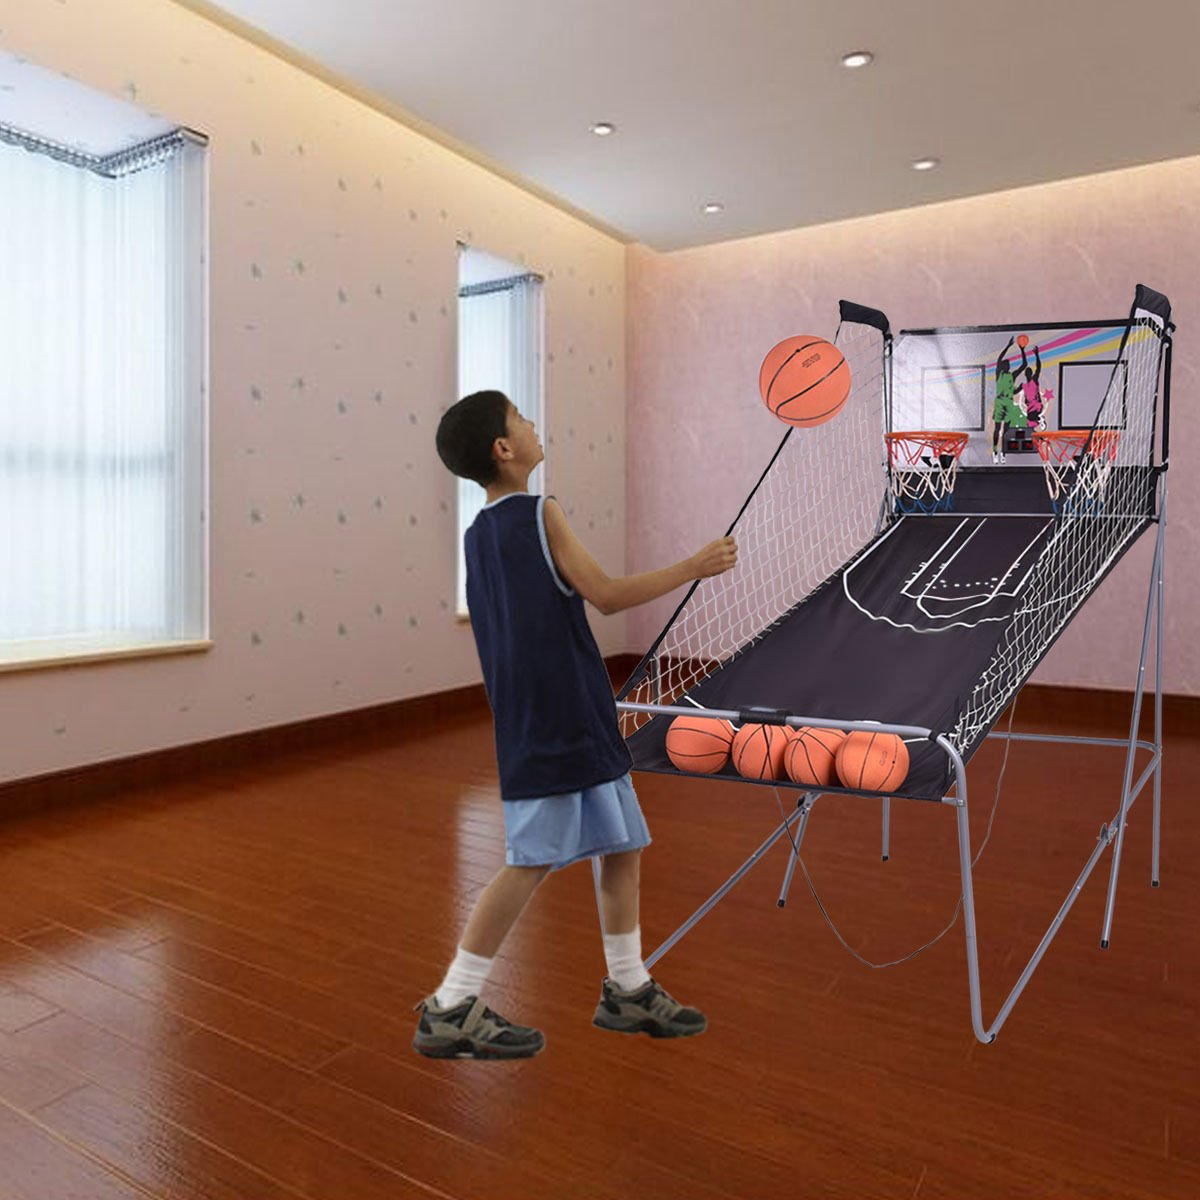 Eight24hours Indoor Basketball Arcade Game Double Electronic Hoops shot 2 Player 4 Balls + FREE E - Book by Eight24hours (Image #6)